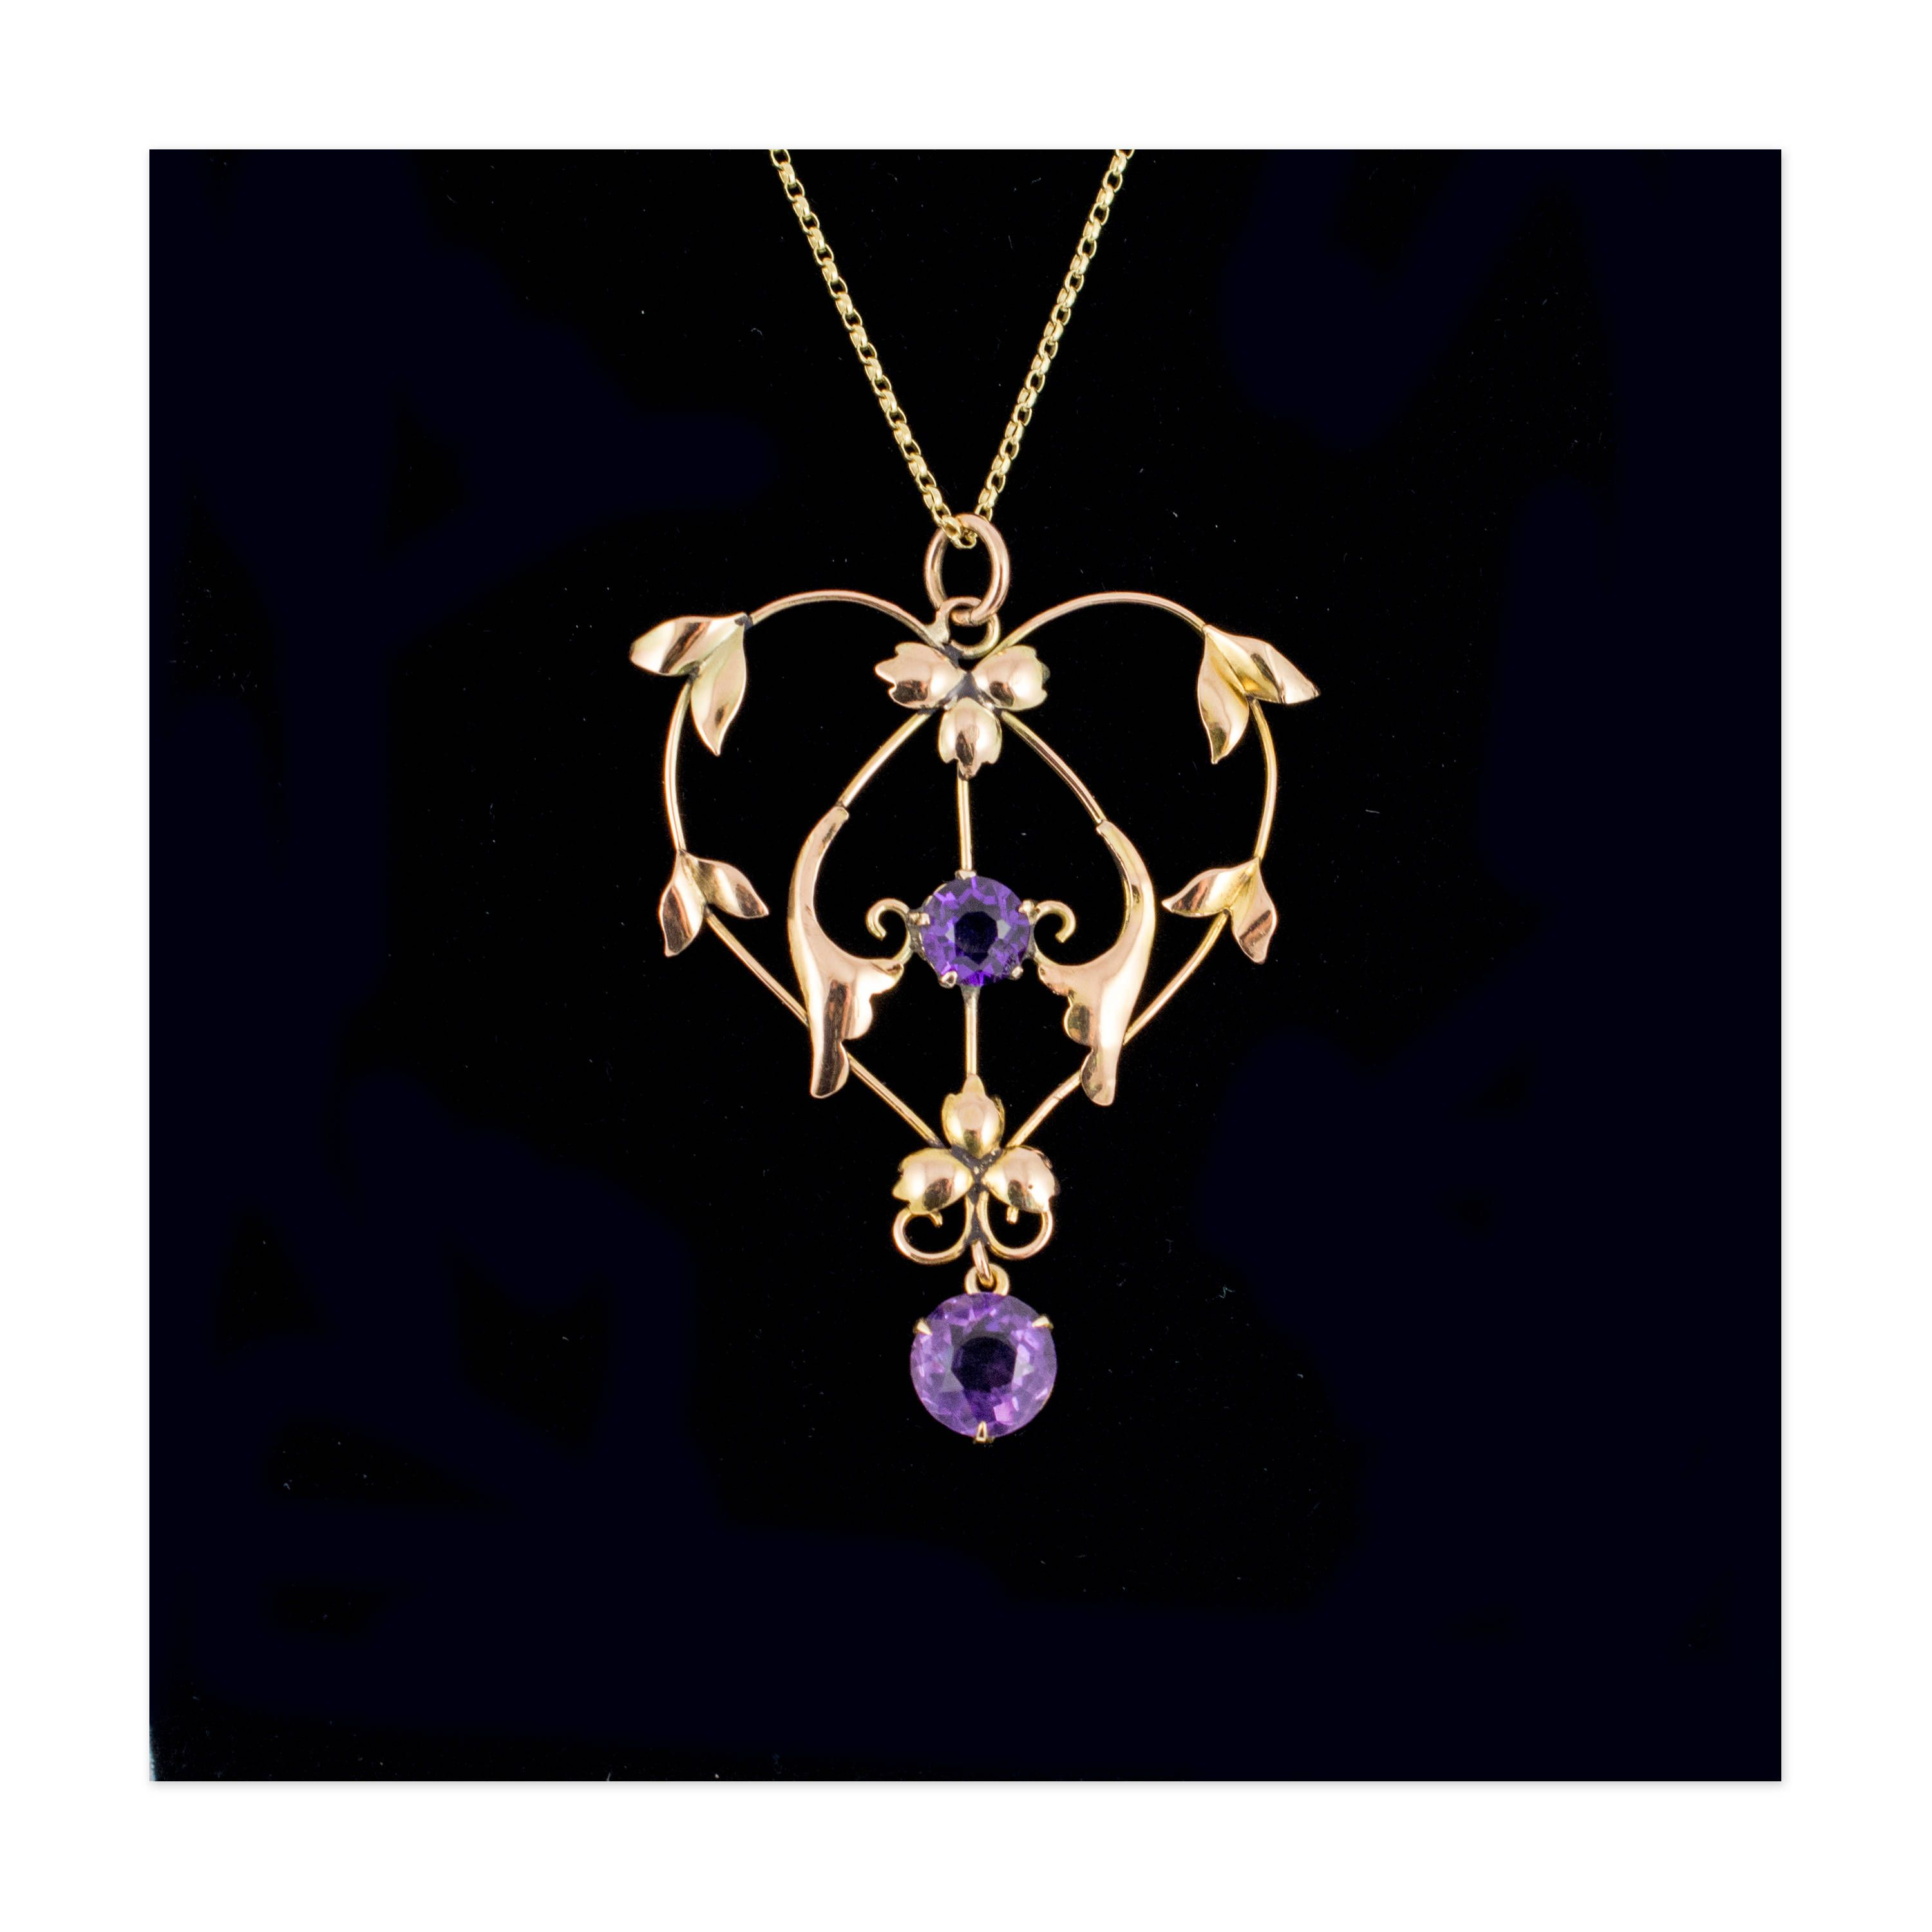 Gorgeous Large Size Antique Amethyst Lavaliere Pendant - heart shape pendant necklace, vintage 9 carat gold pendant, vintage jewellery by HelenasCurio on Etsy